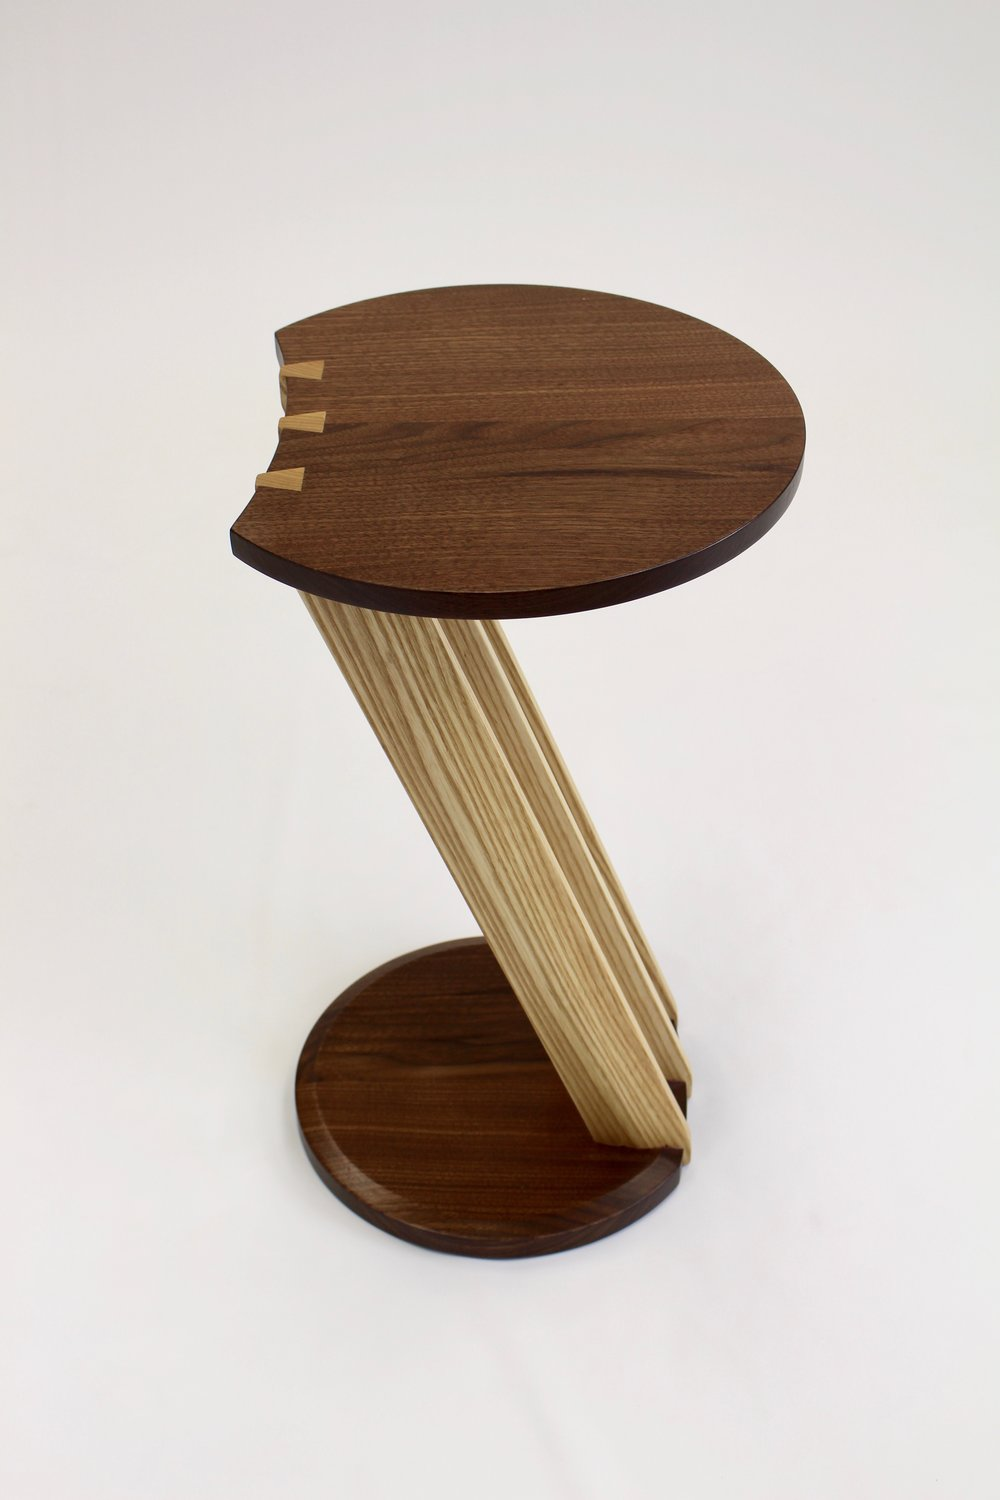 Dovetail End Table Produced in Collaboration with WE Living